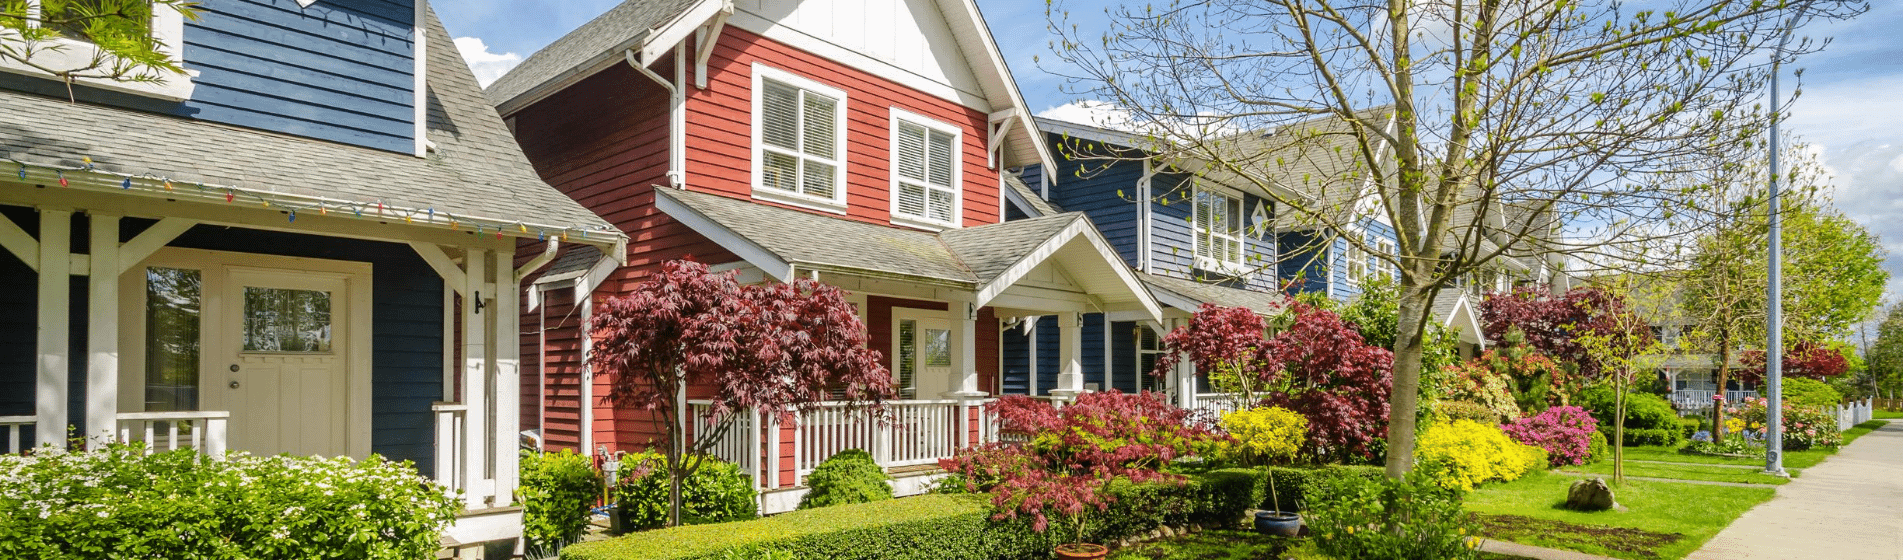 4 Things to Consider When Investing in US Real Estate